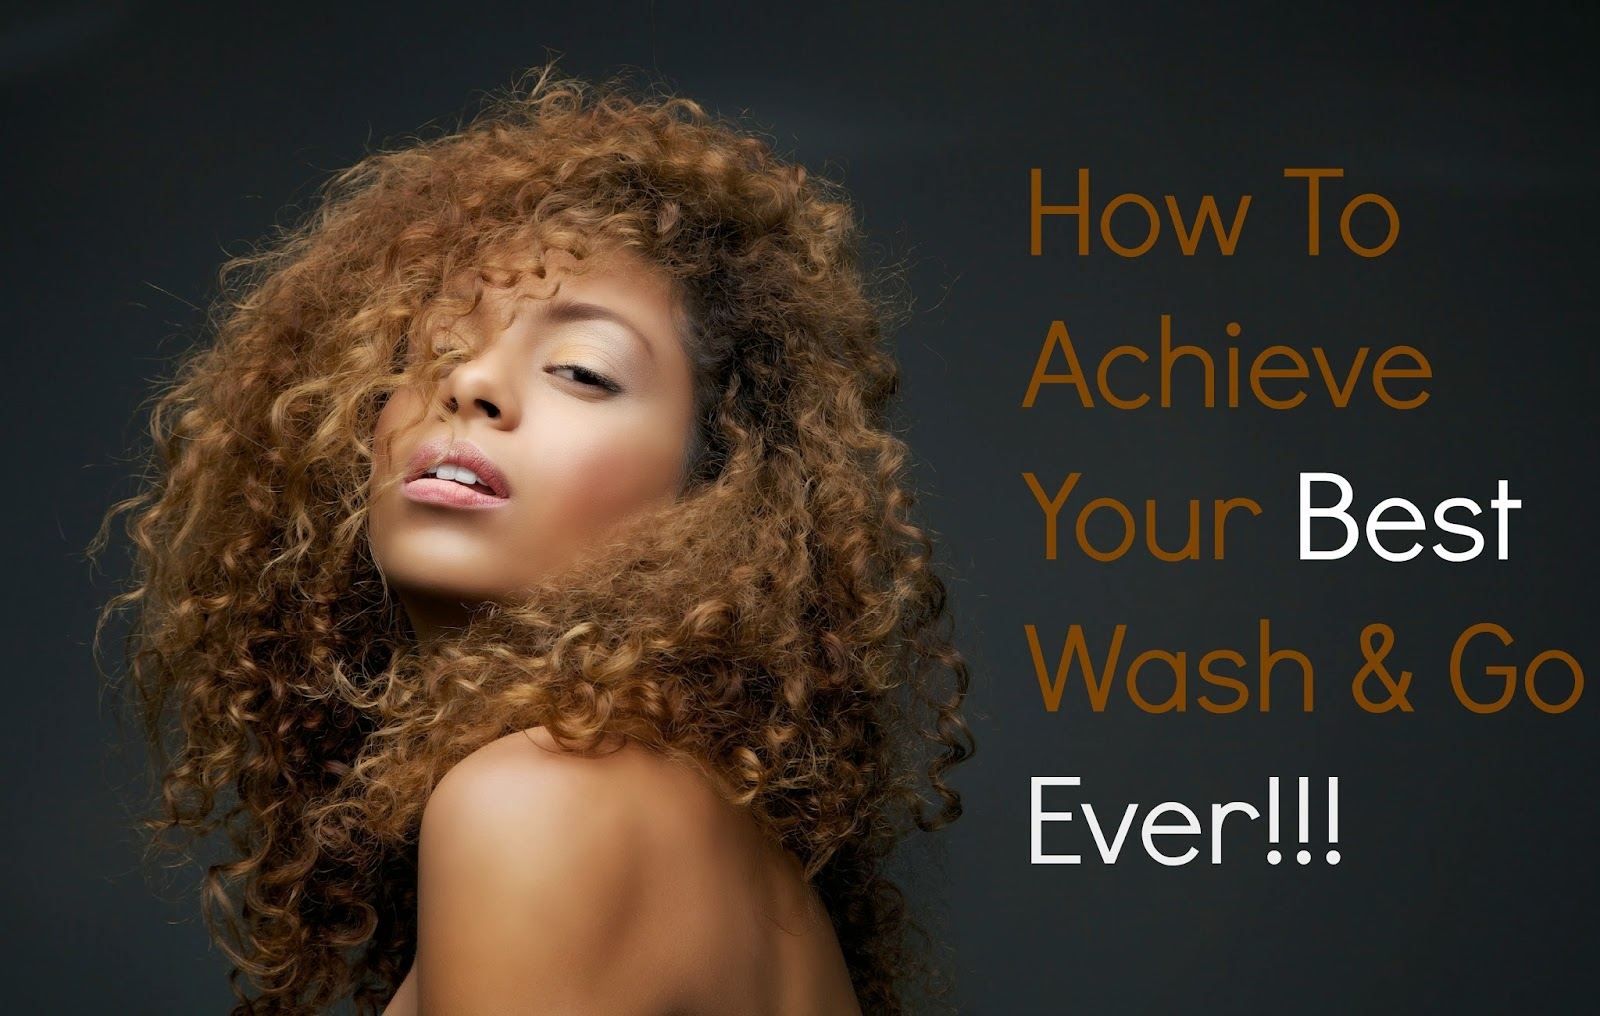 How To Achieve Your Best Wash & Go Ever!!!